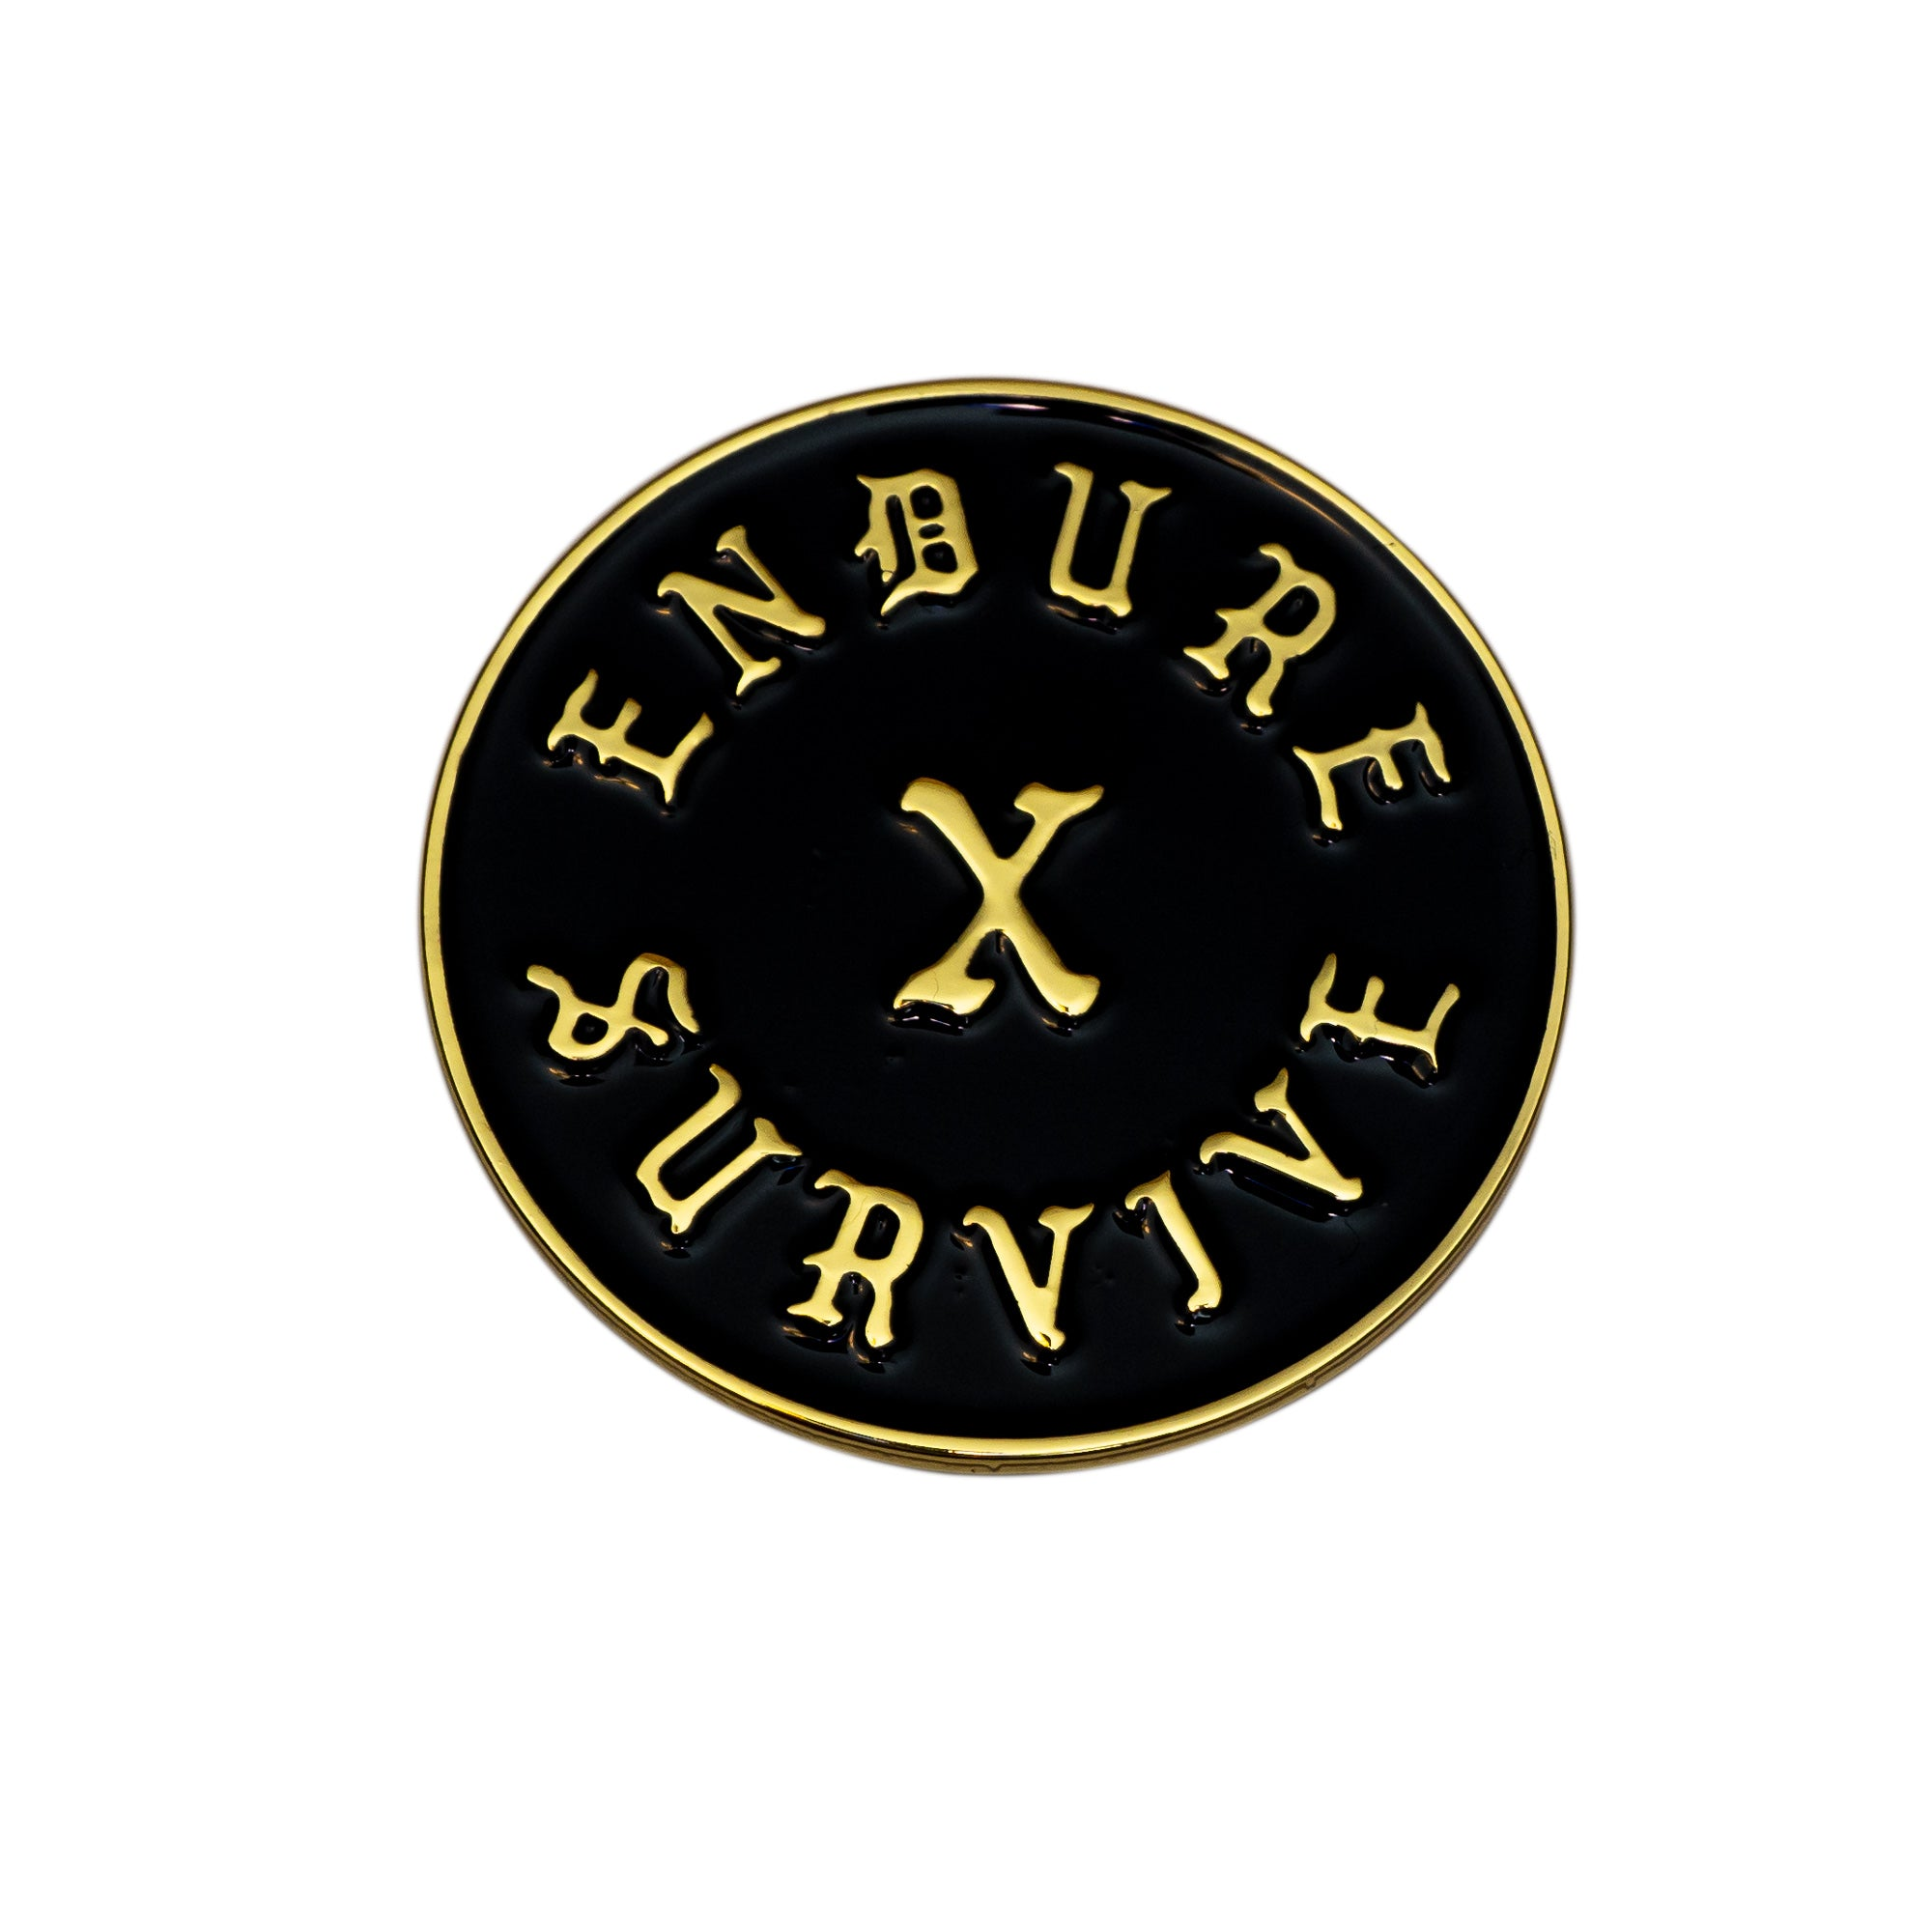 Endure X Survive Pin